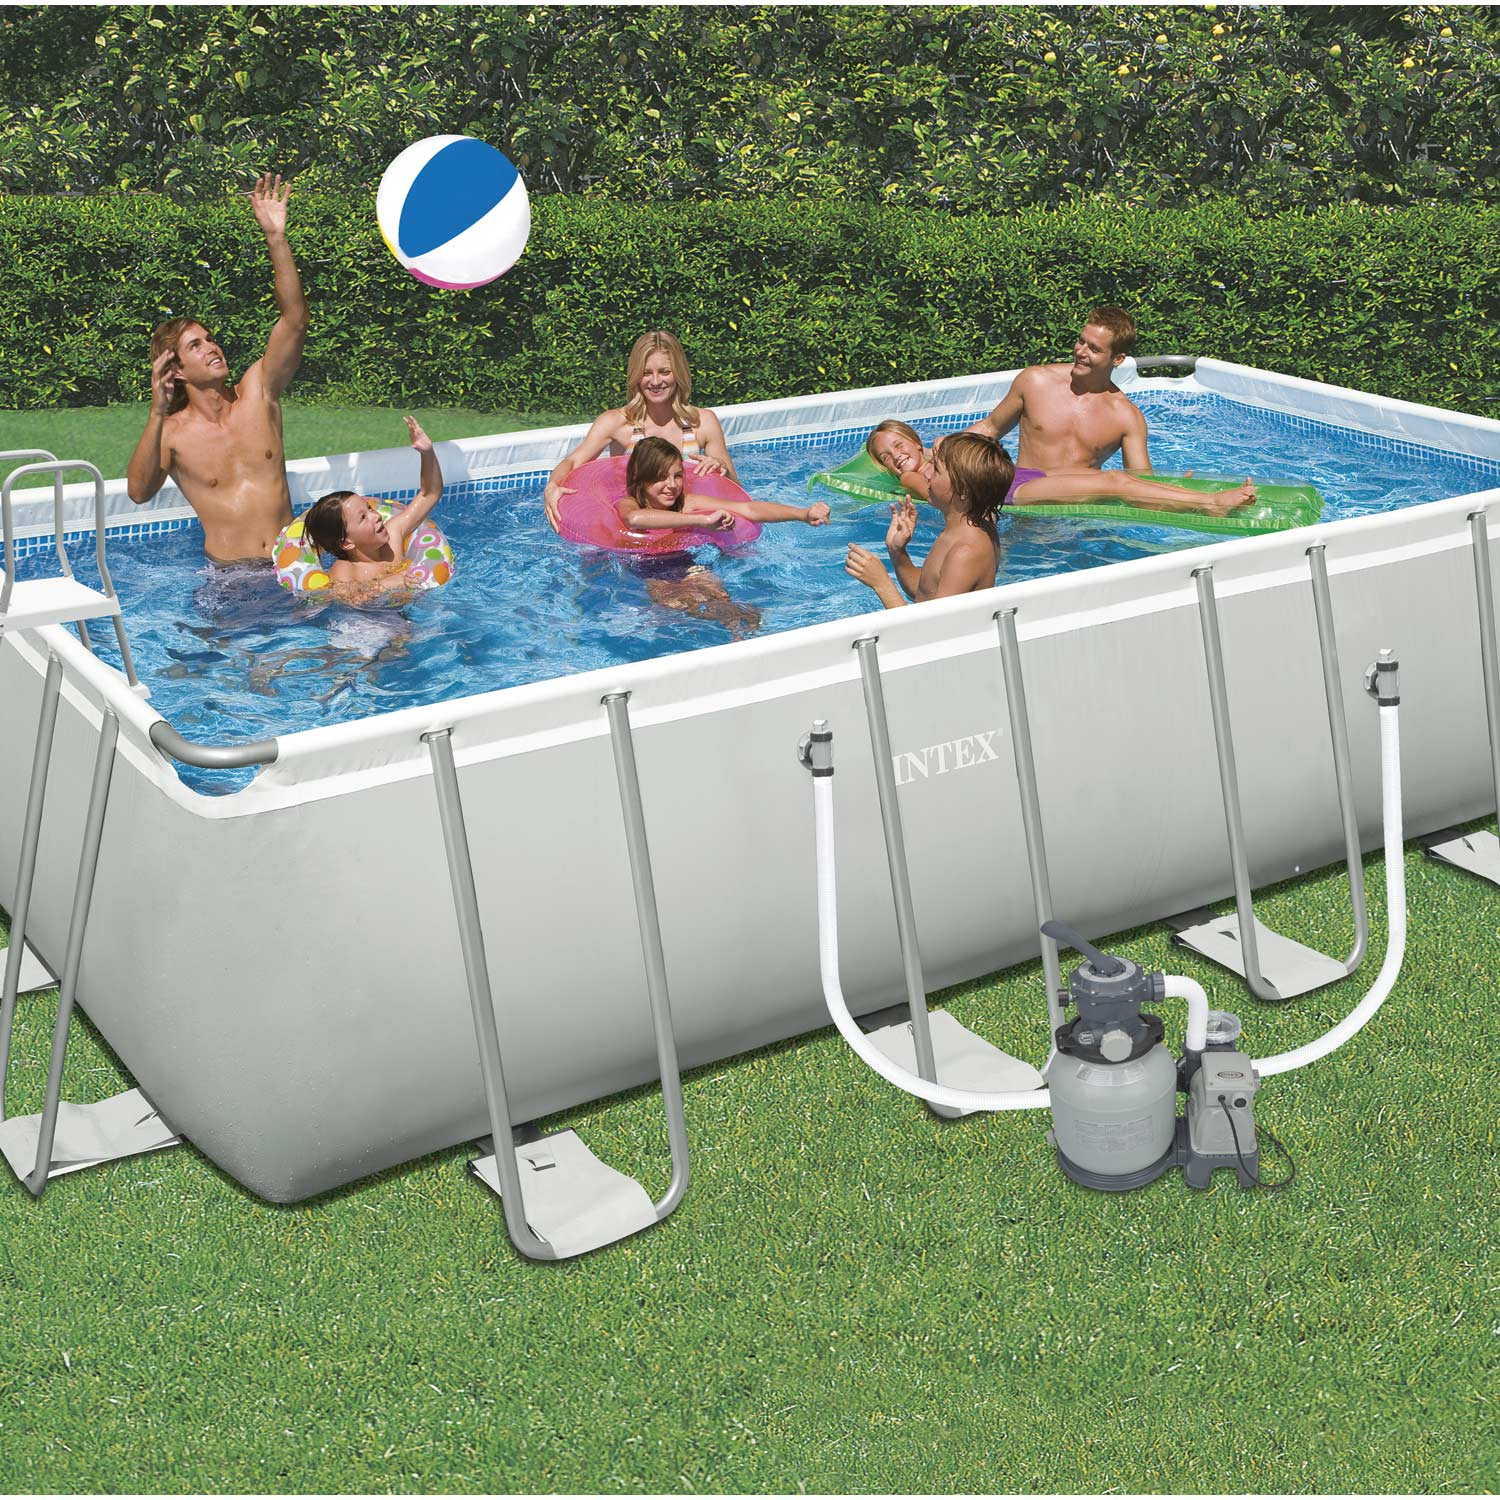 Piscine hors sol autoportante tubulaire ultra silver intex for Piscine dure hors sol